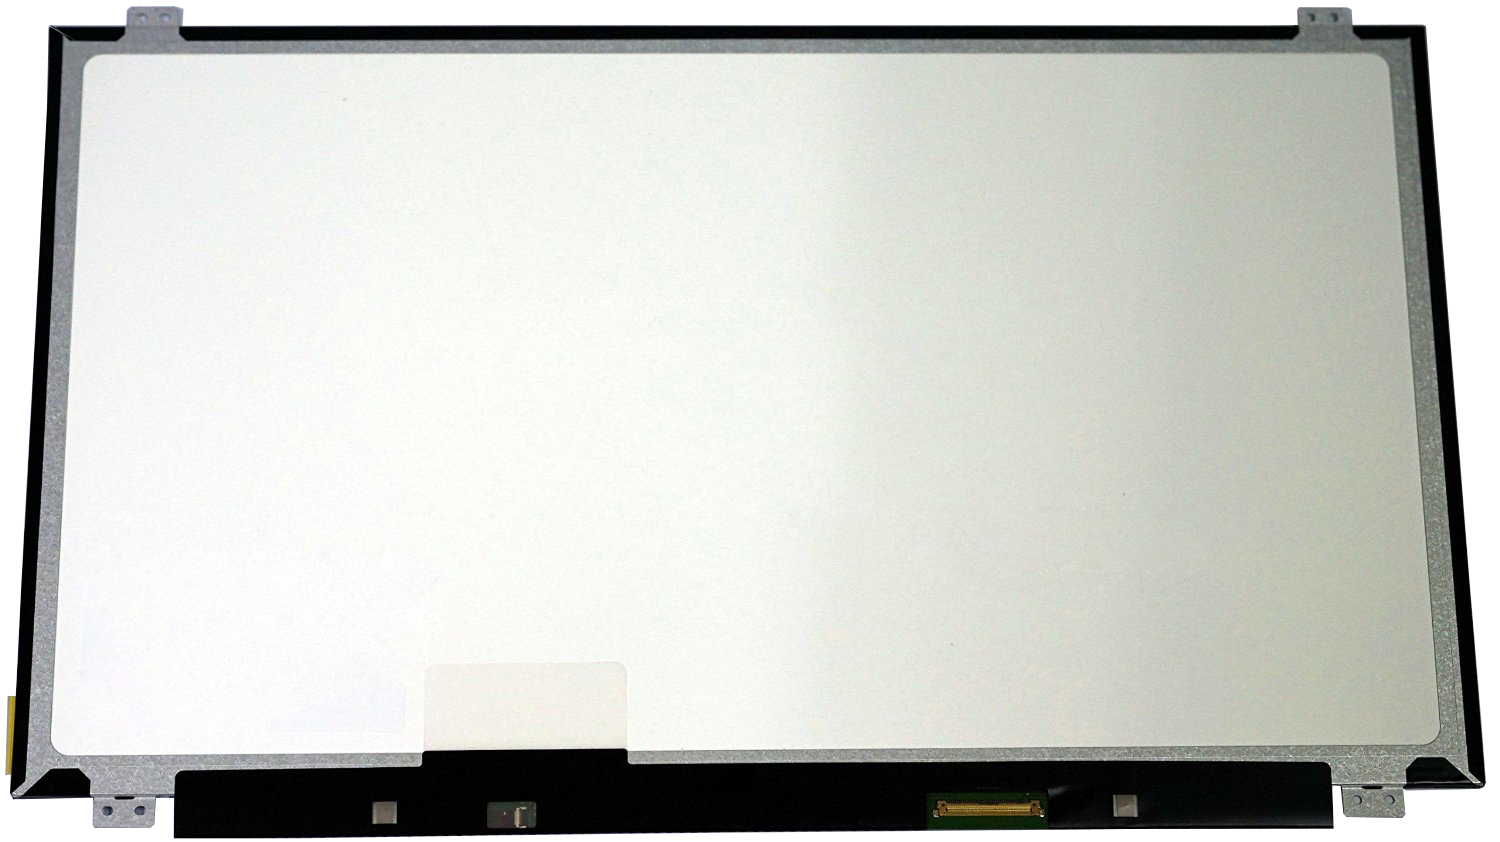 ФОТО QuYing Laptop LCD Screen for Acer ASPIRE V5-572P V5-573G V5-571PG V7-581 V5-552P V5-573P E5-532T SERIES(15.6 1366x768 30pin)